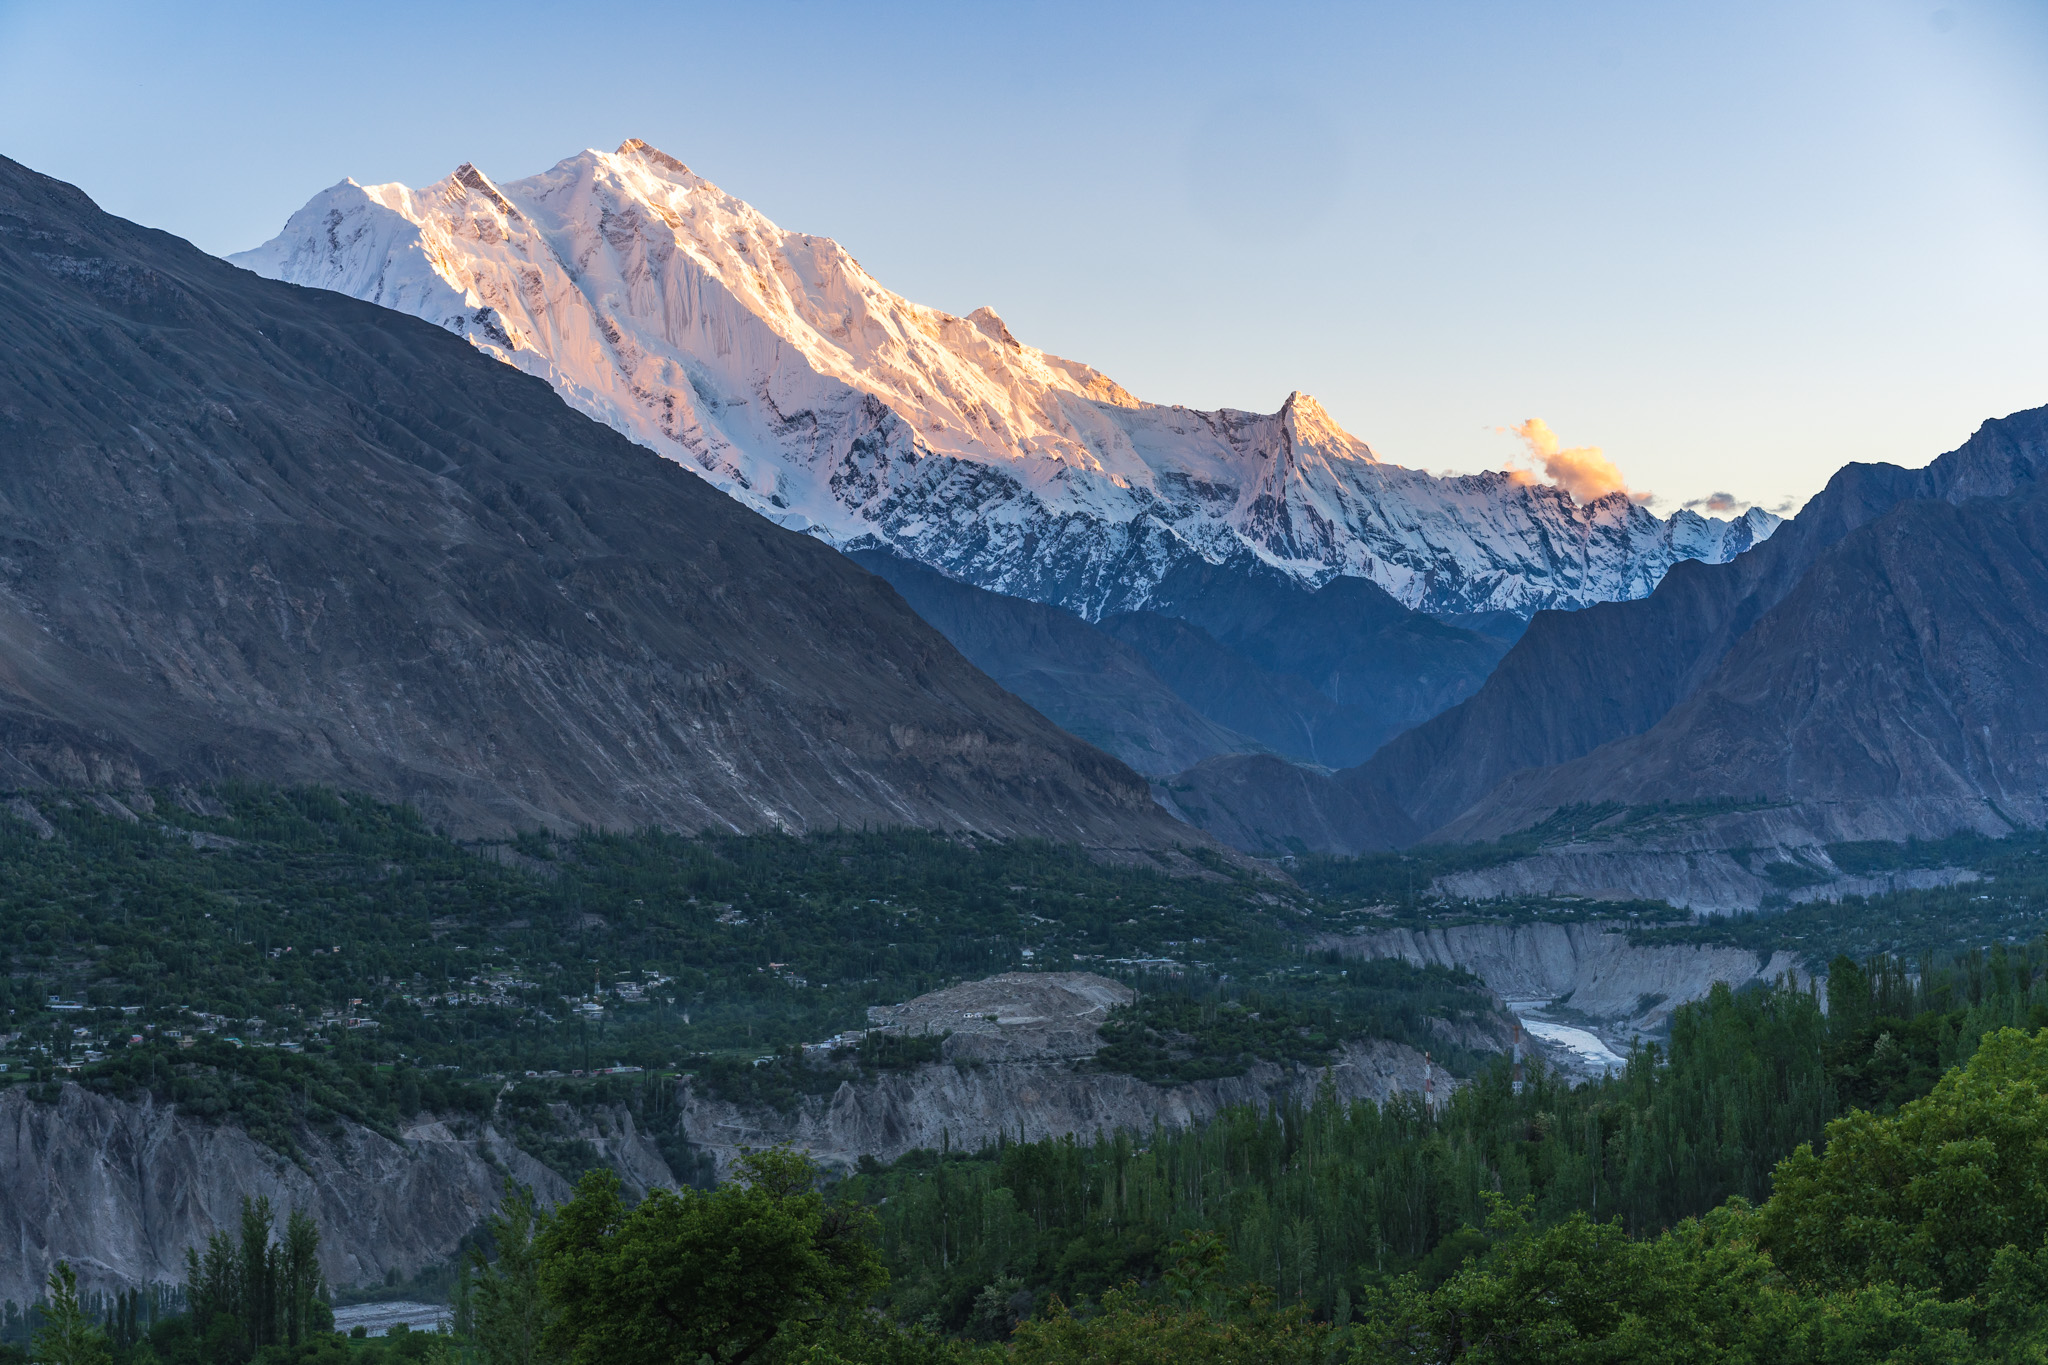 View of Rakaposhi at sunset from Karimabad, Pakistan